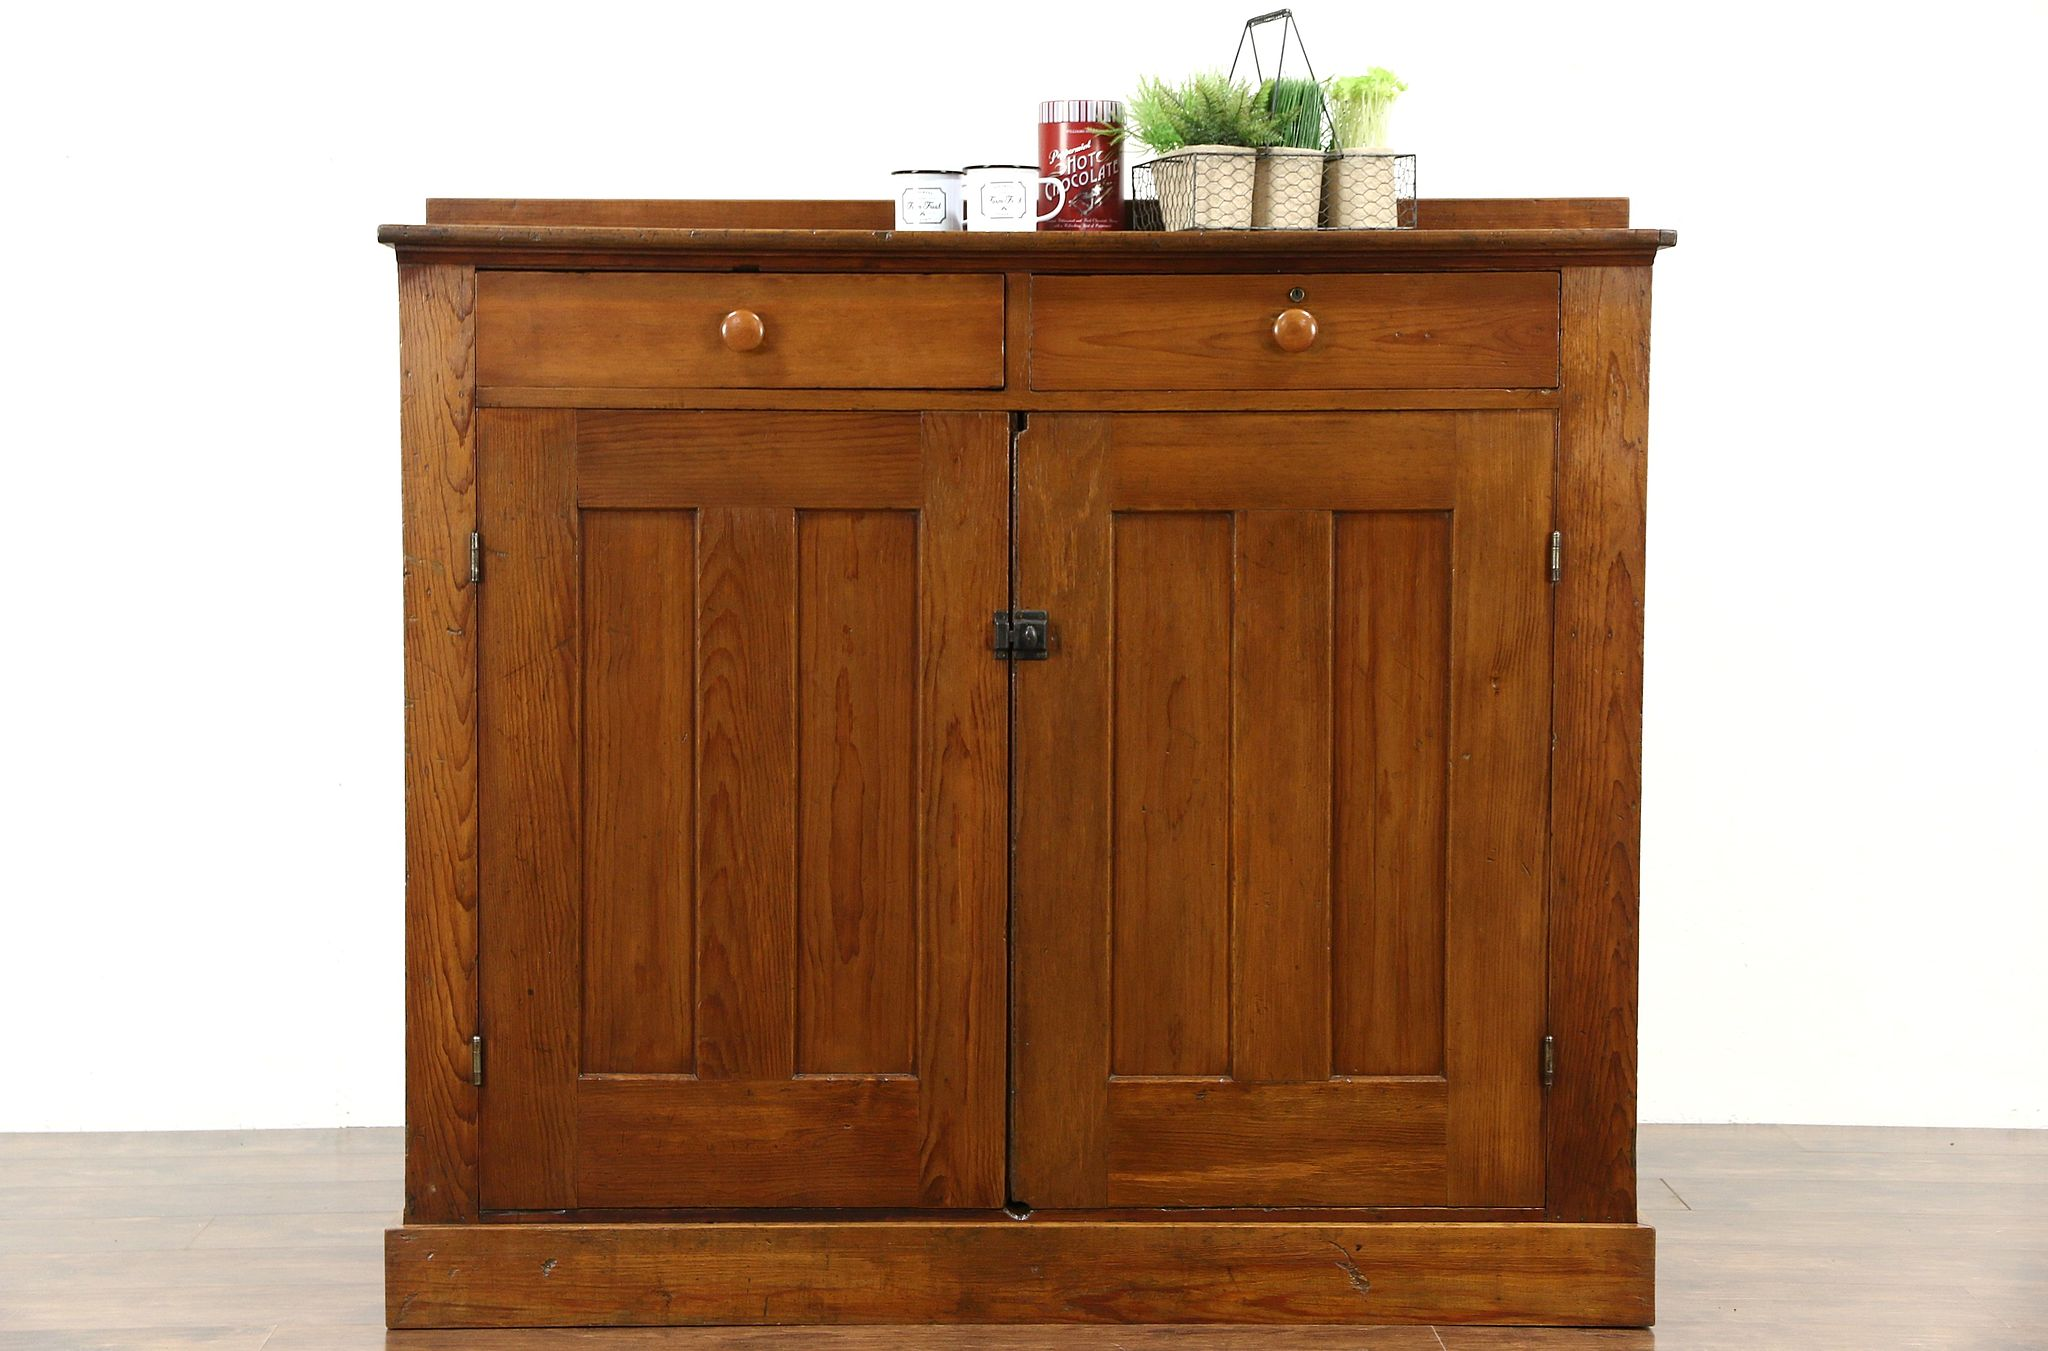 Antique Rustic Cabinet Or Pantry Jelly